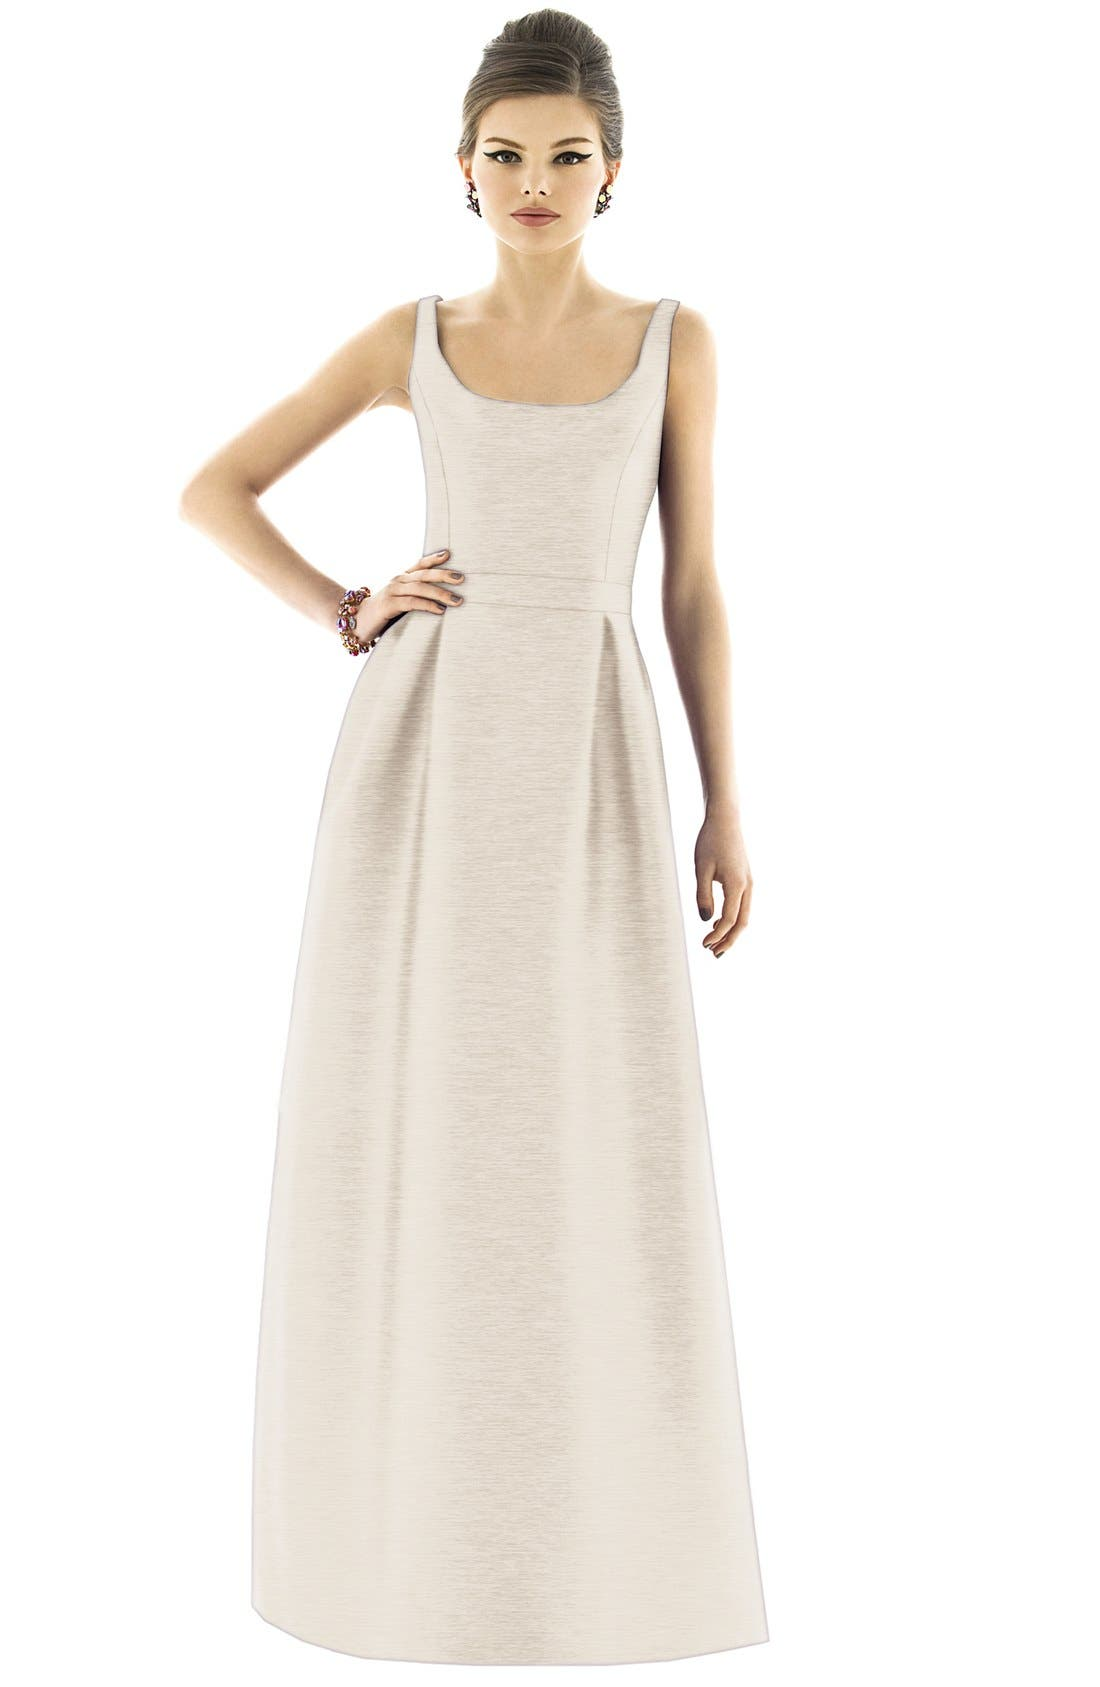 Alternate Image 1 Selected - Alfred Sung Scoop Neck Dupioni Full Length Dress